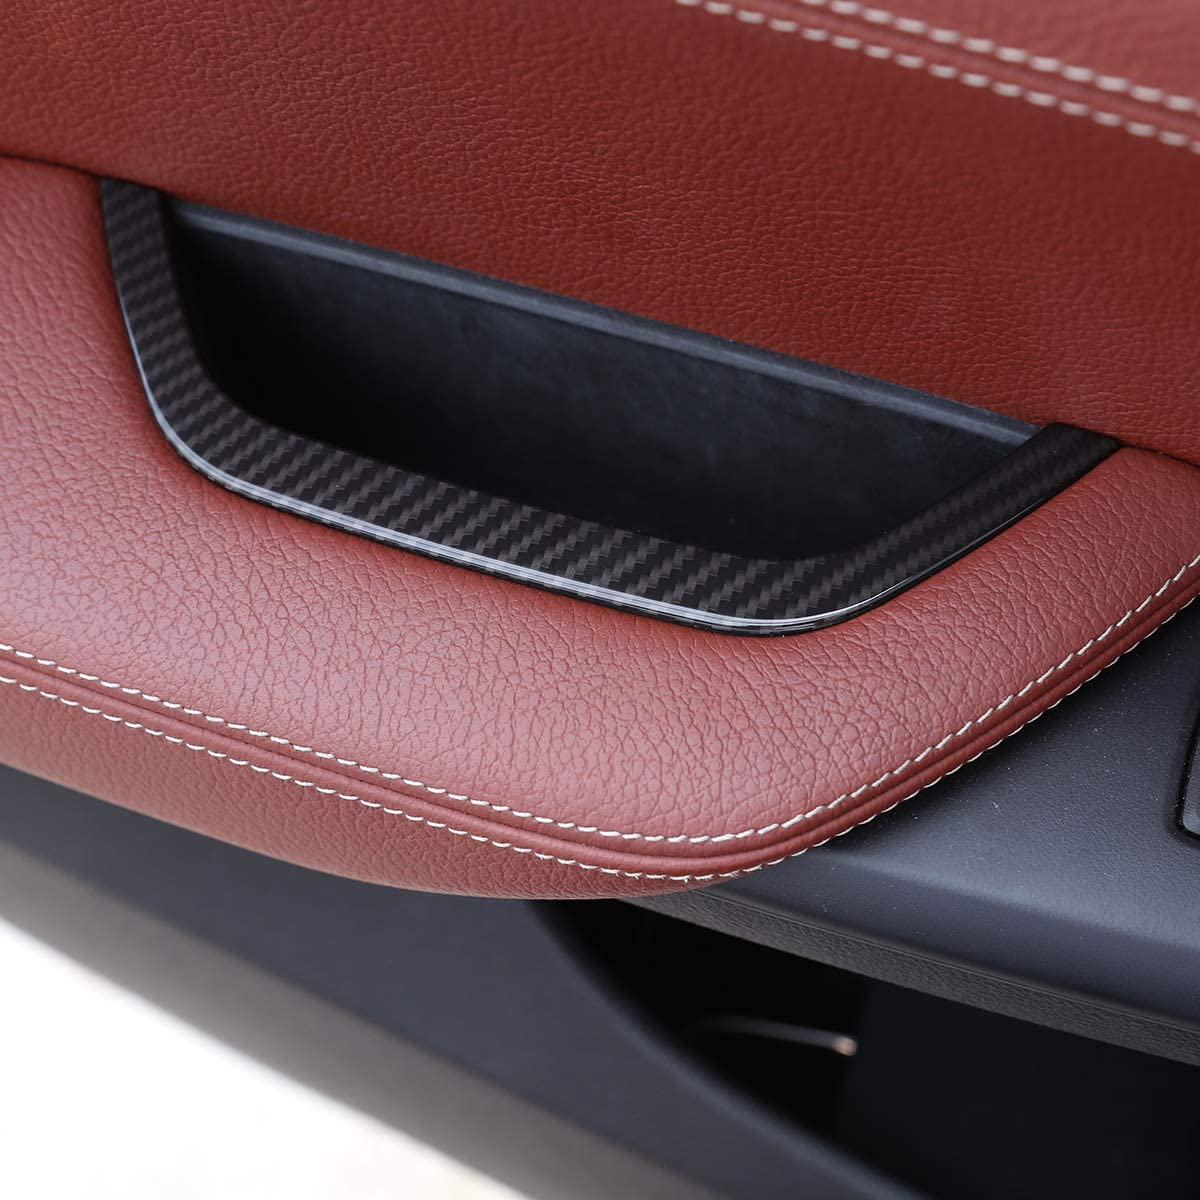 YIWANG Carbon Fiber Style ABS Interior Drivers Door Armrest Storage Box Frame Trim Cover For X3 X4 F25 F26 2011-2017 Auto Accessories